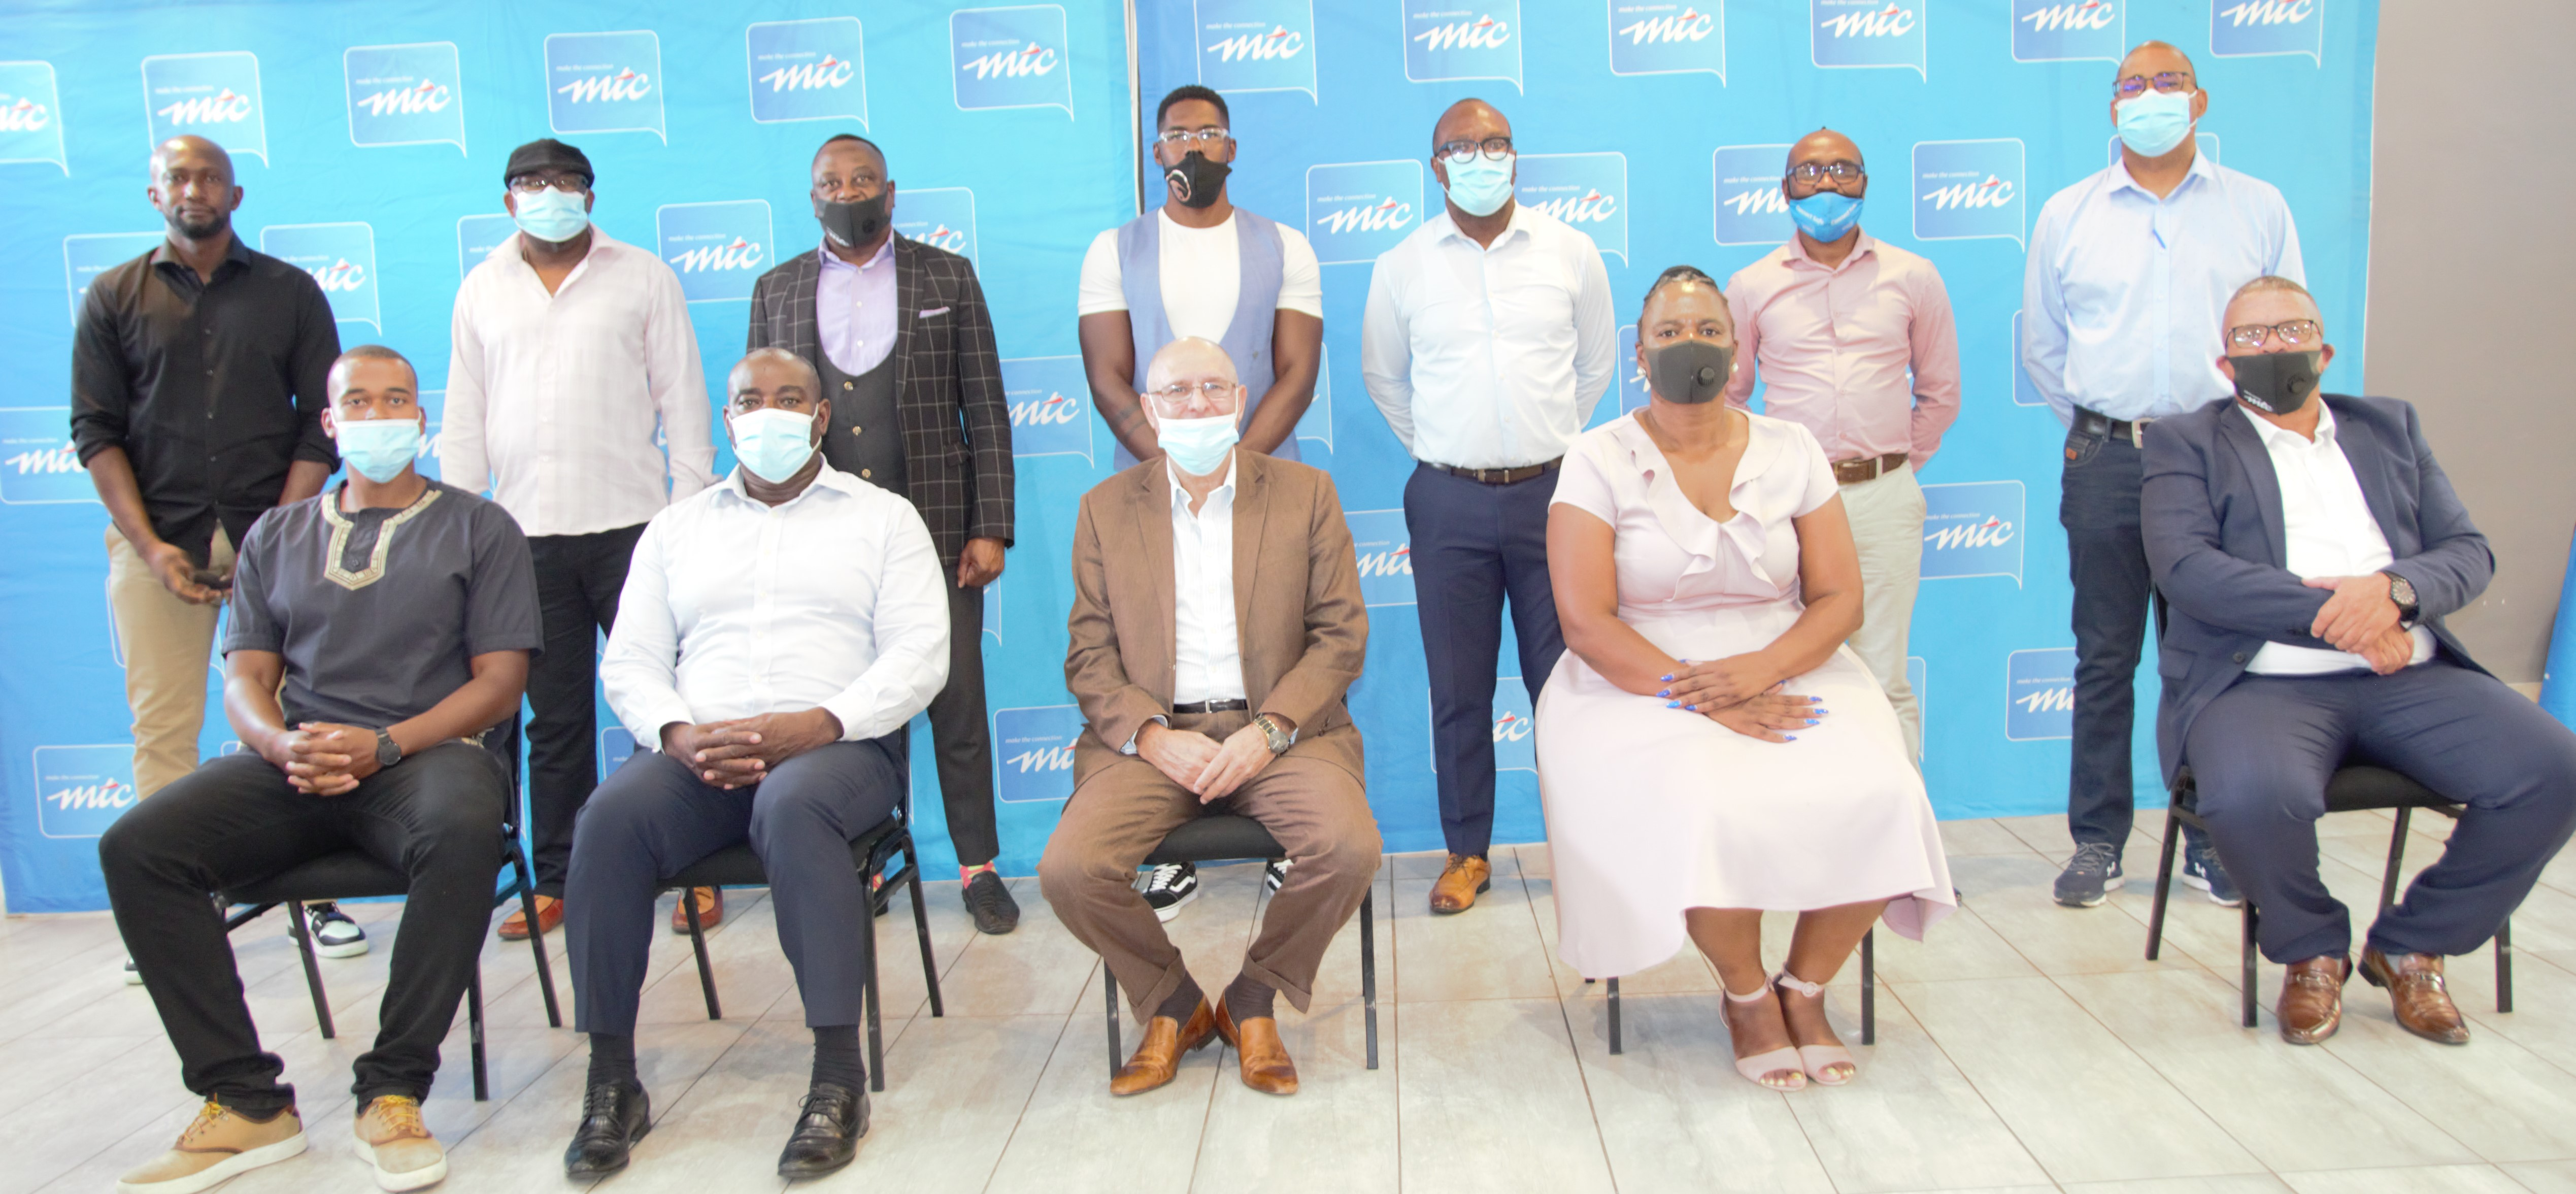 Our brand will not be compromised, MTC warns beneficiaries